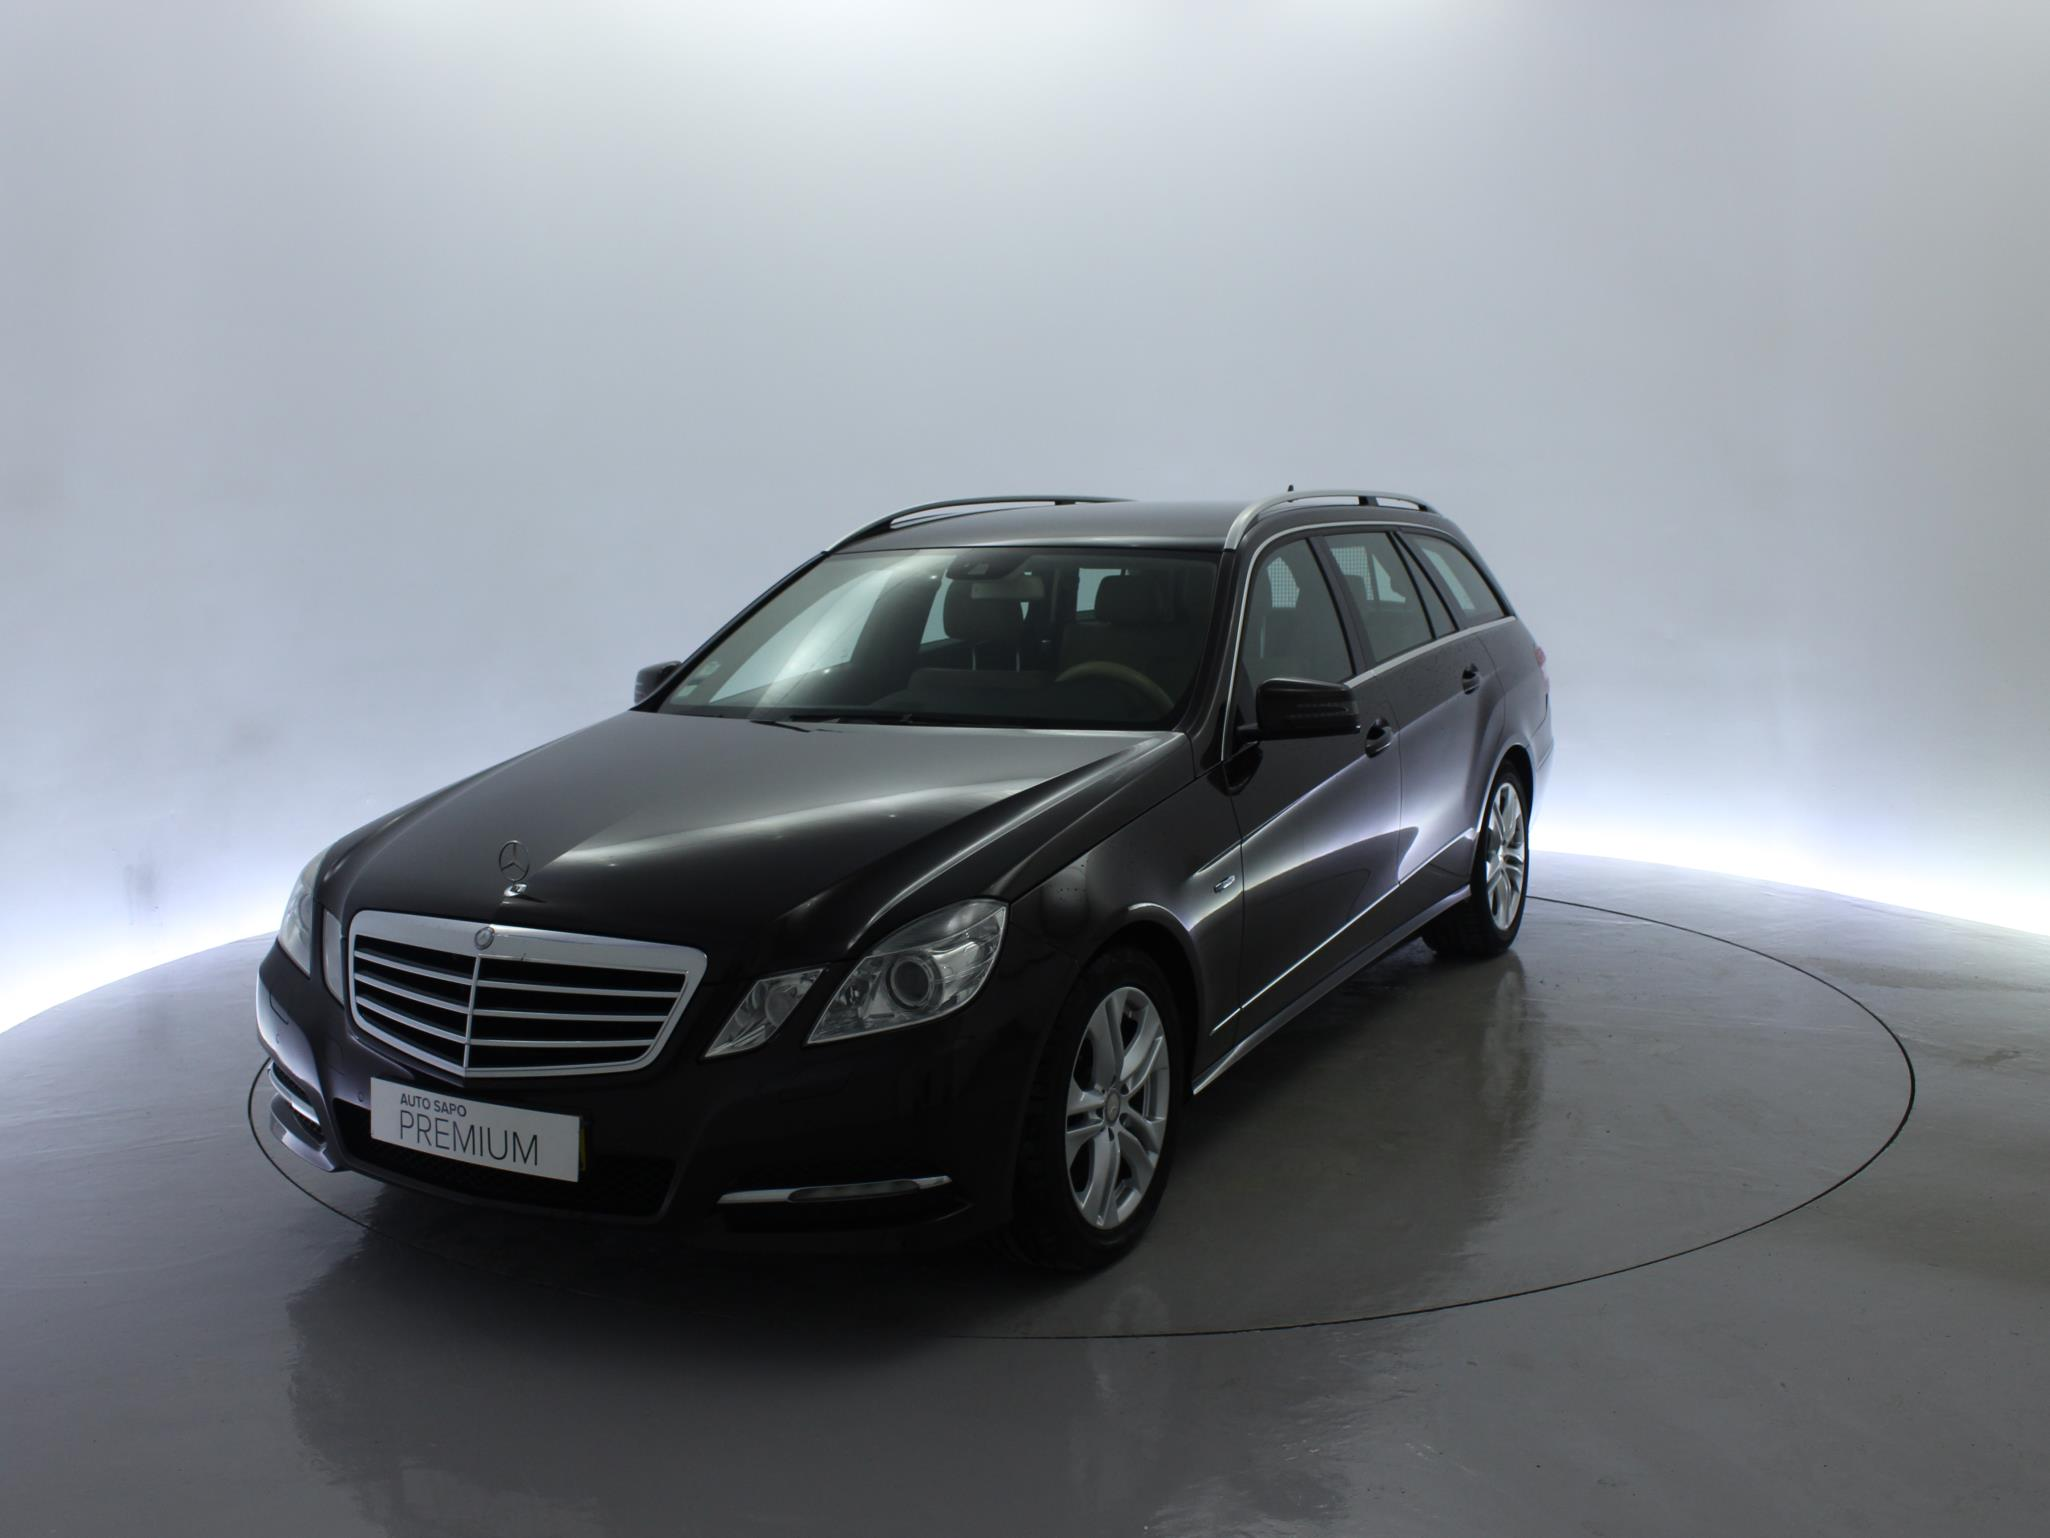 Mercedes-Benz Classe E 250 CDi BE Avantgarde